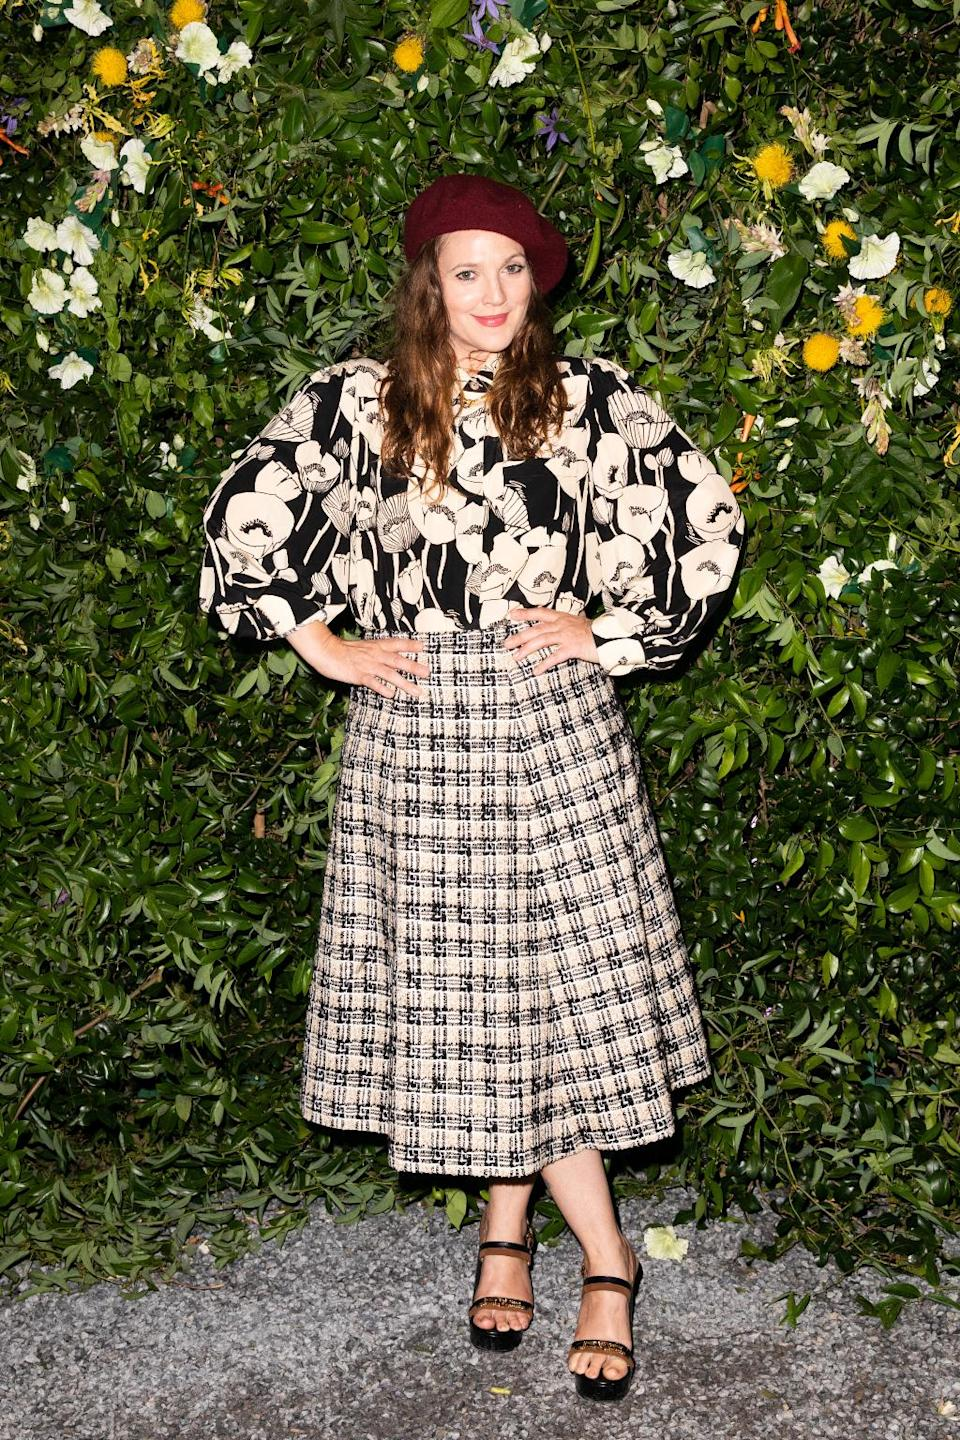 Drew Barrymore attends Gucci and Elizabeth Saltzman's private event at the Saltzman family home in the Hamptons, New York, July 10. - Credit: BFA FOR GUCCI